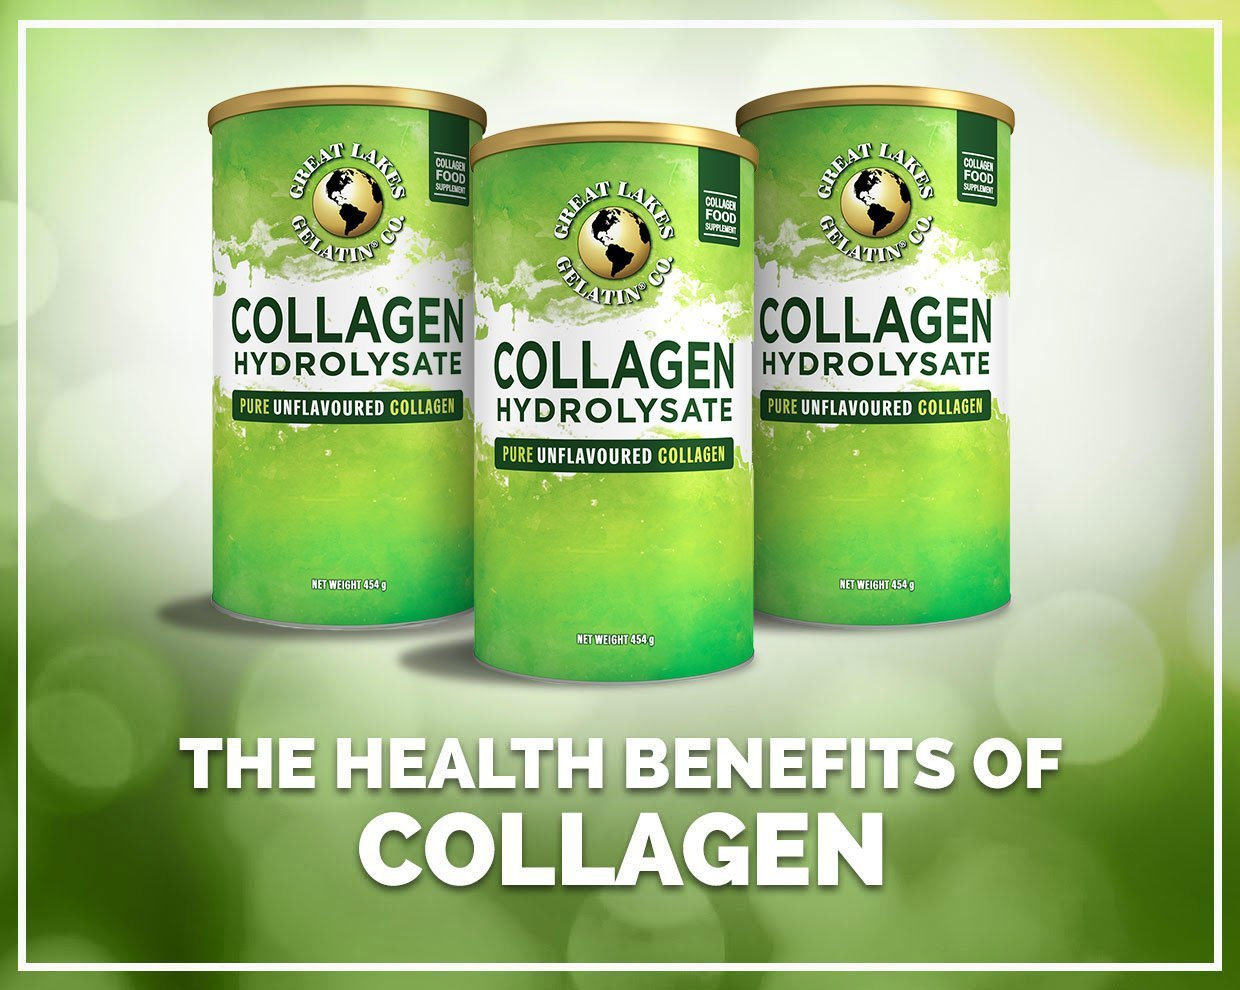 The health benefits of collagen